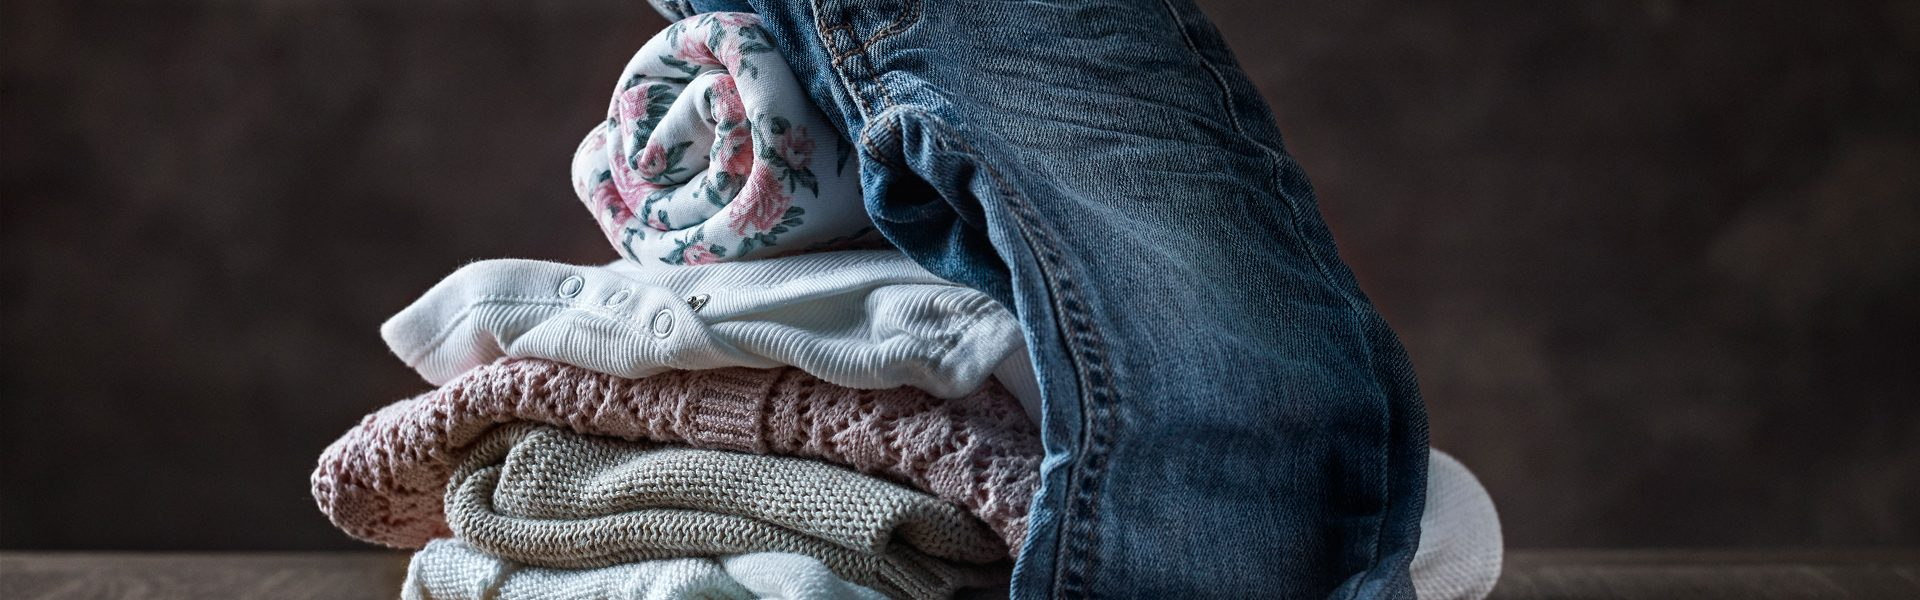 Effective and powerful washing programs for all kinds of laundry